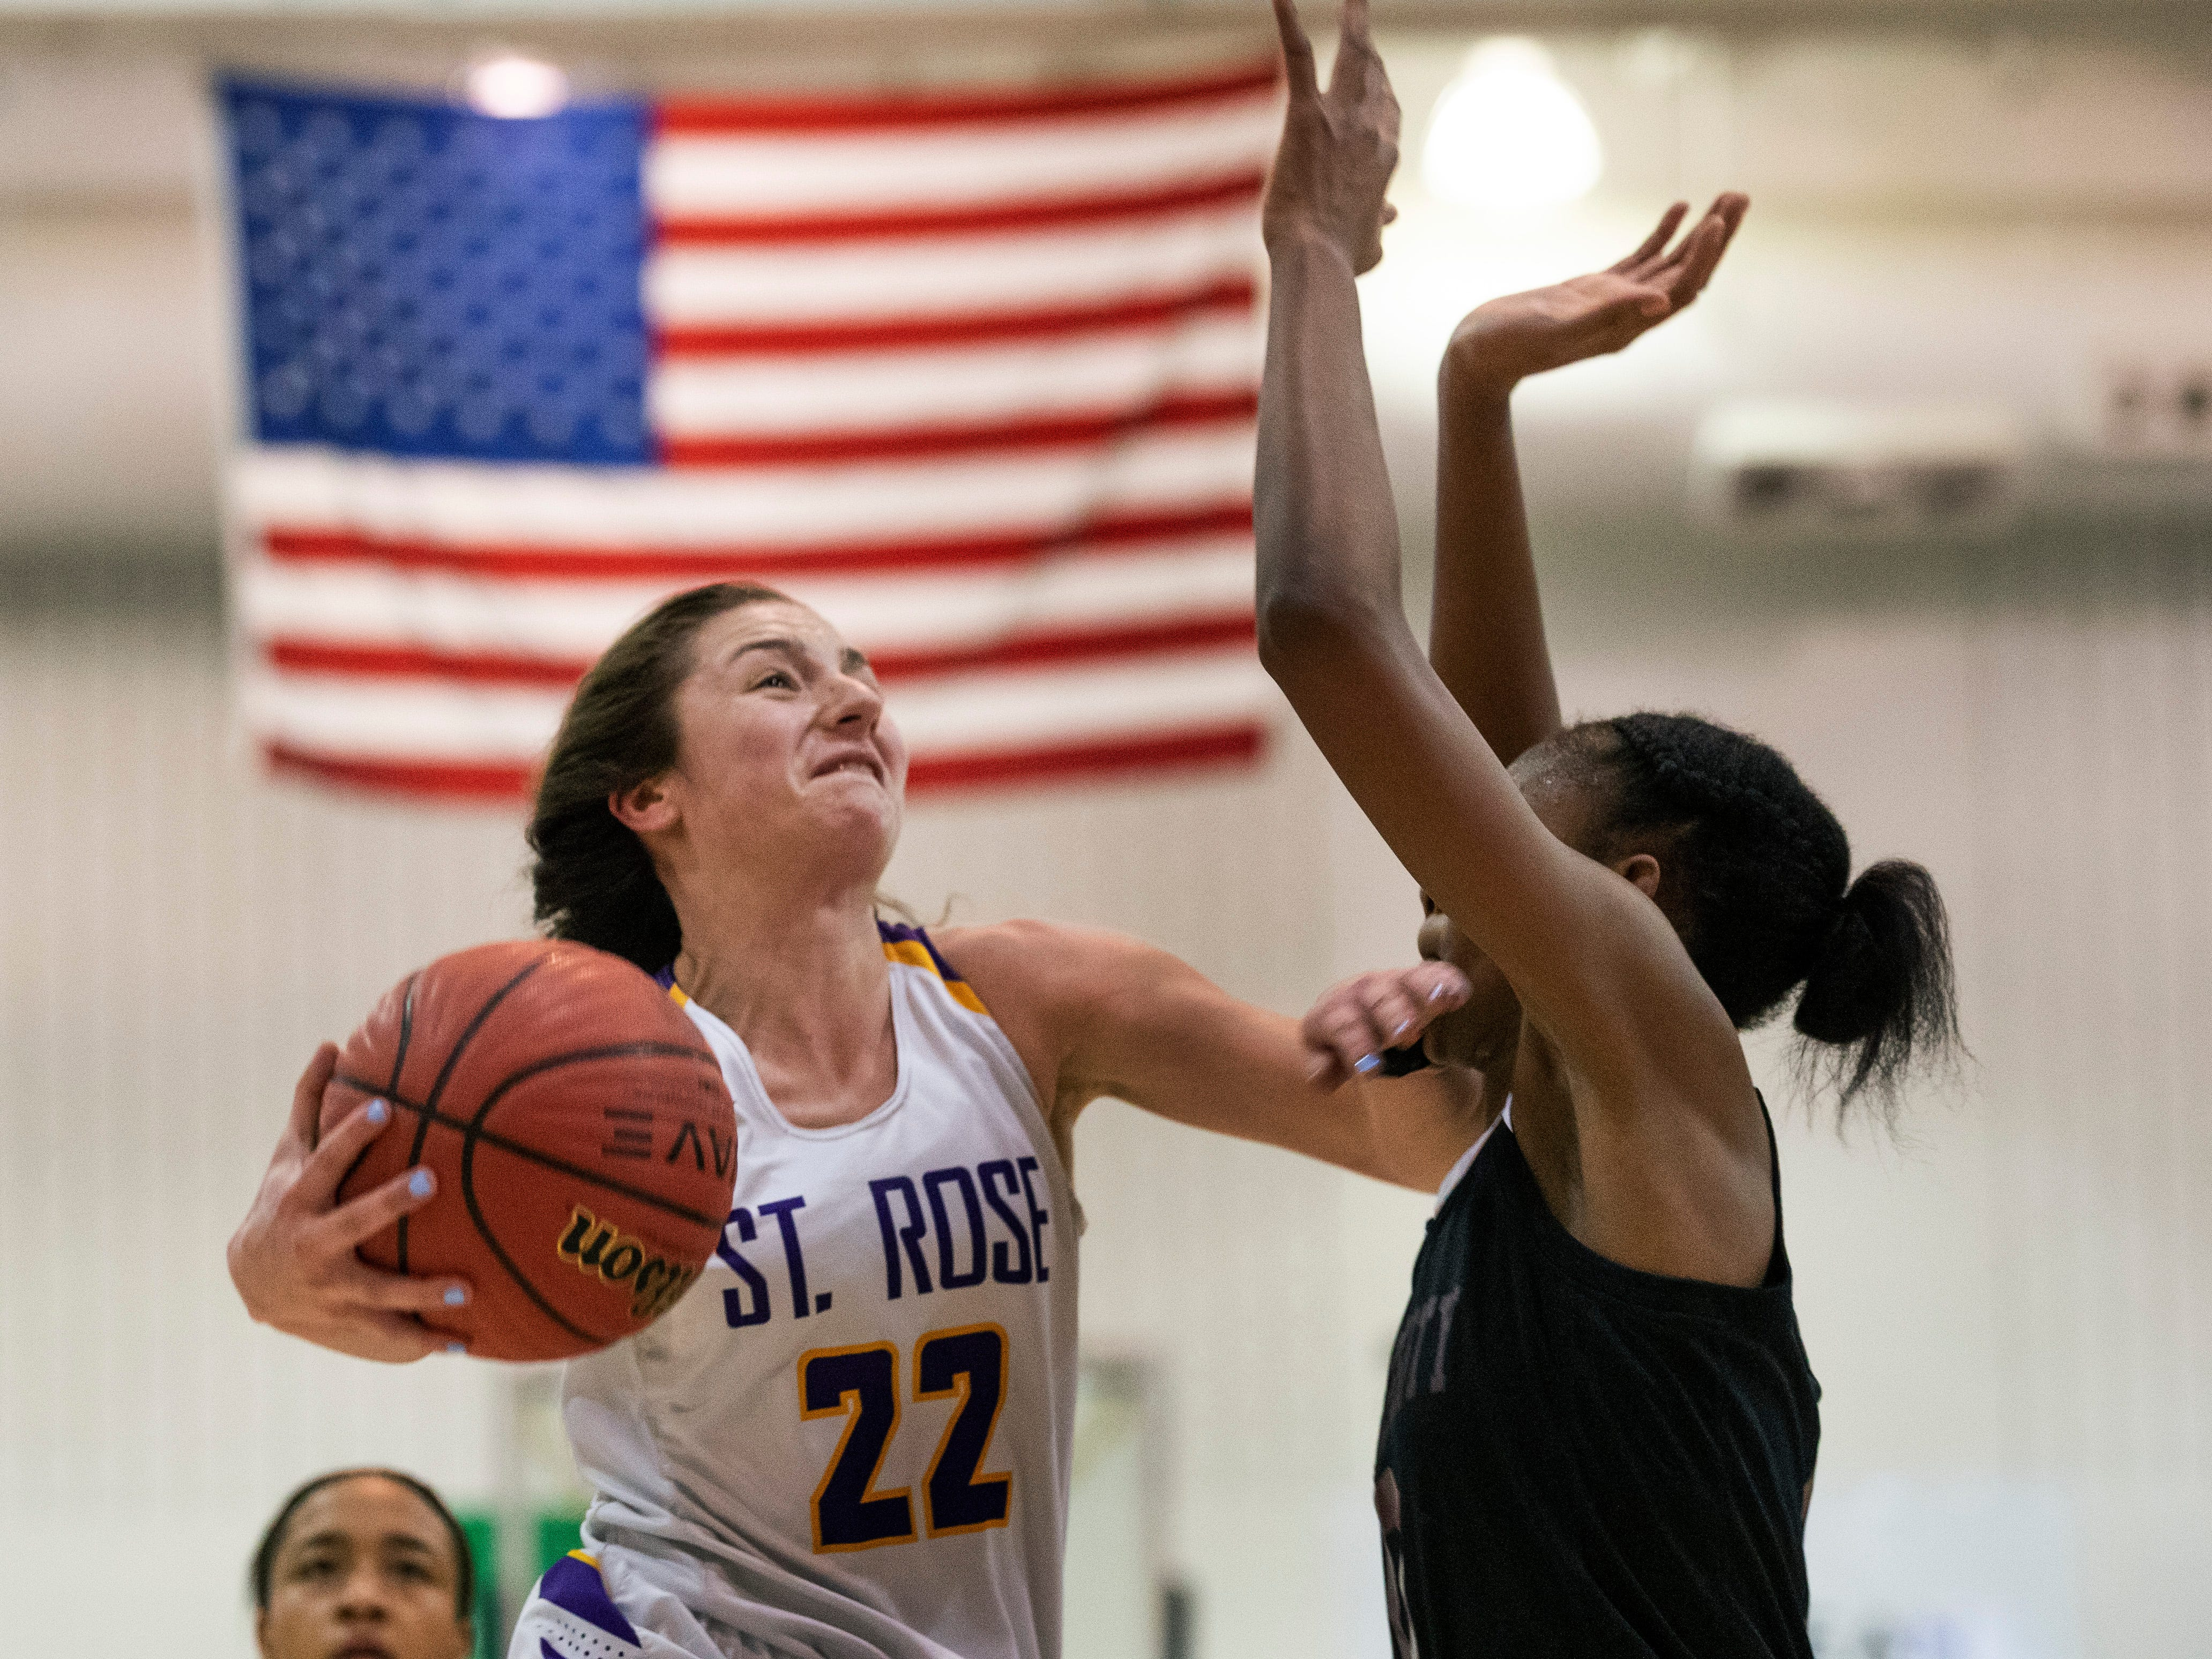 St Rose Girls Basketball vs University in Tournament of Champions opening round game in Toms River on March 12, 2019